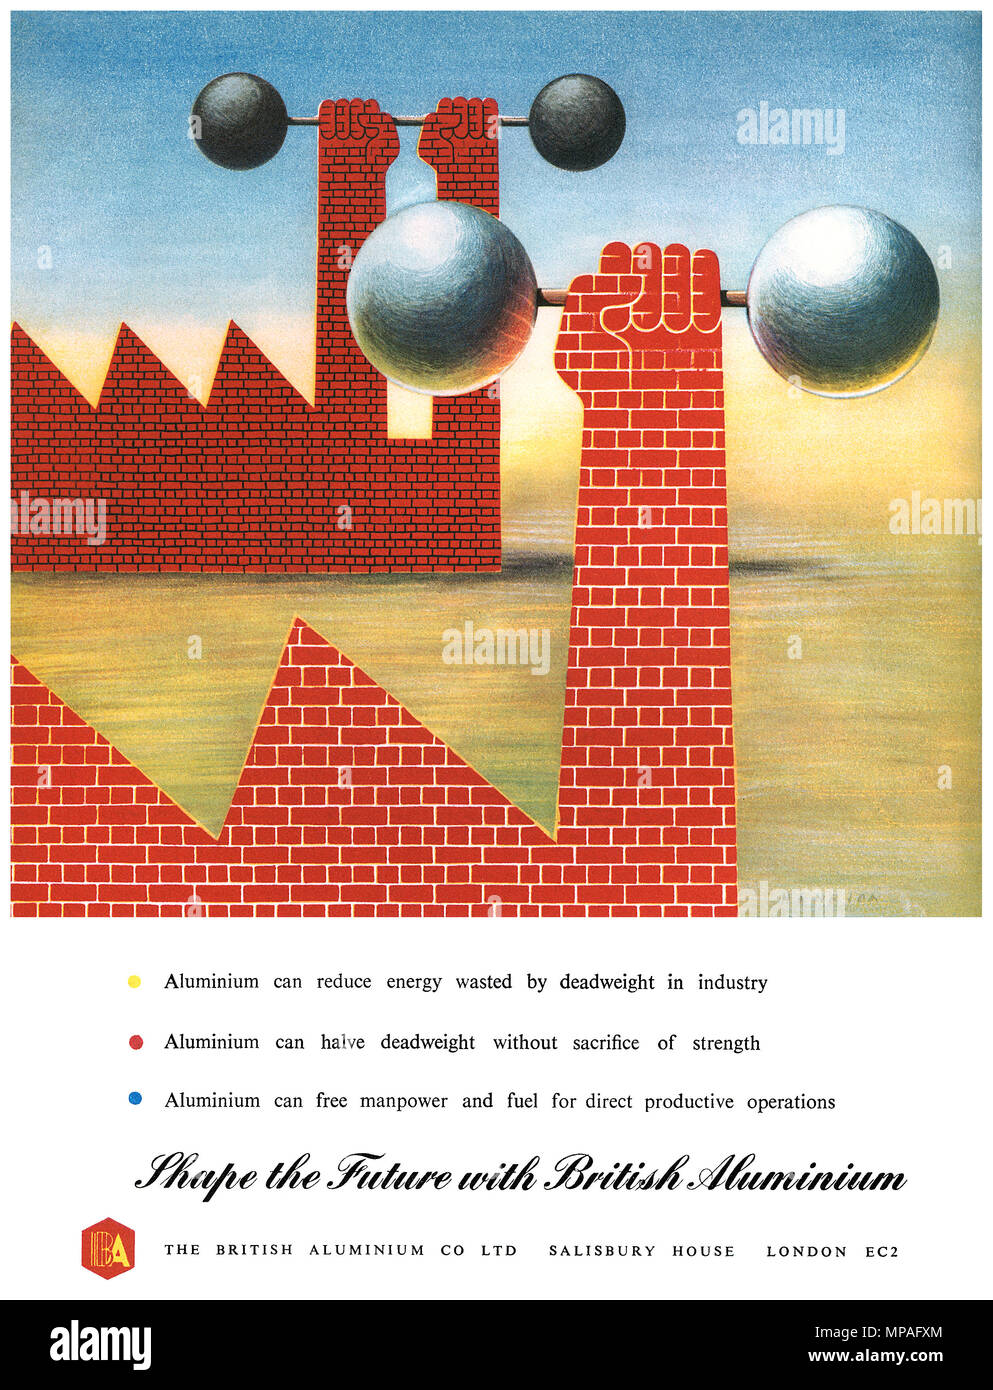 1948 British advertisement for The British Aluminium Co Ltd, designed by F.H.K. Henrion. - Stock Image